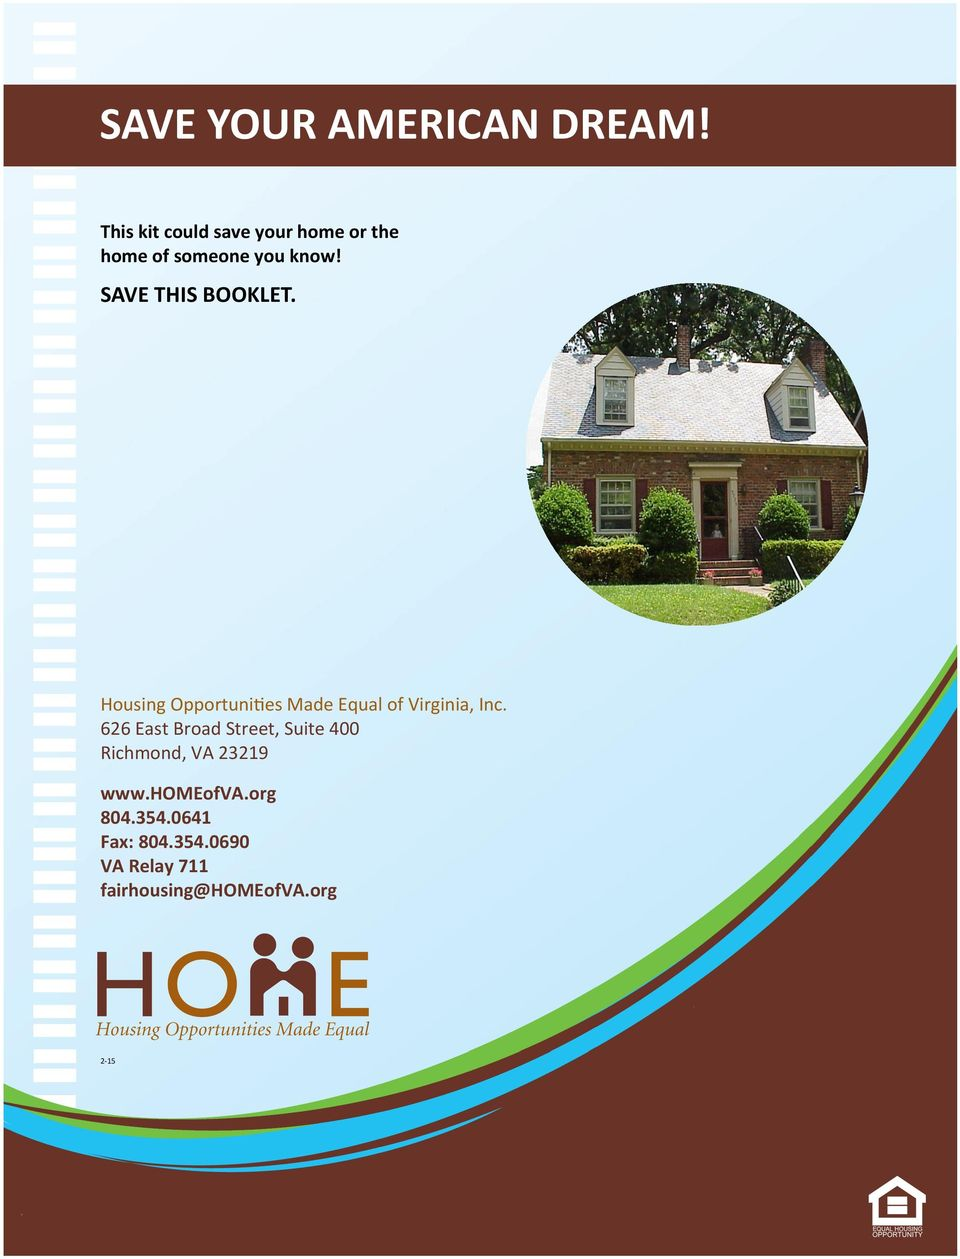 SAVE THIS BOOKLET. Housing Opportunities Made Equal of Virginia, Inc.